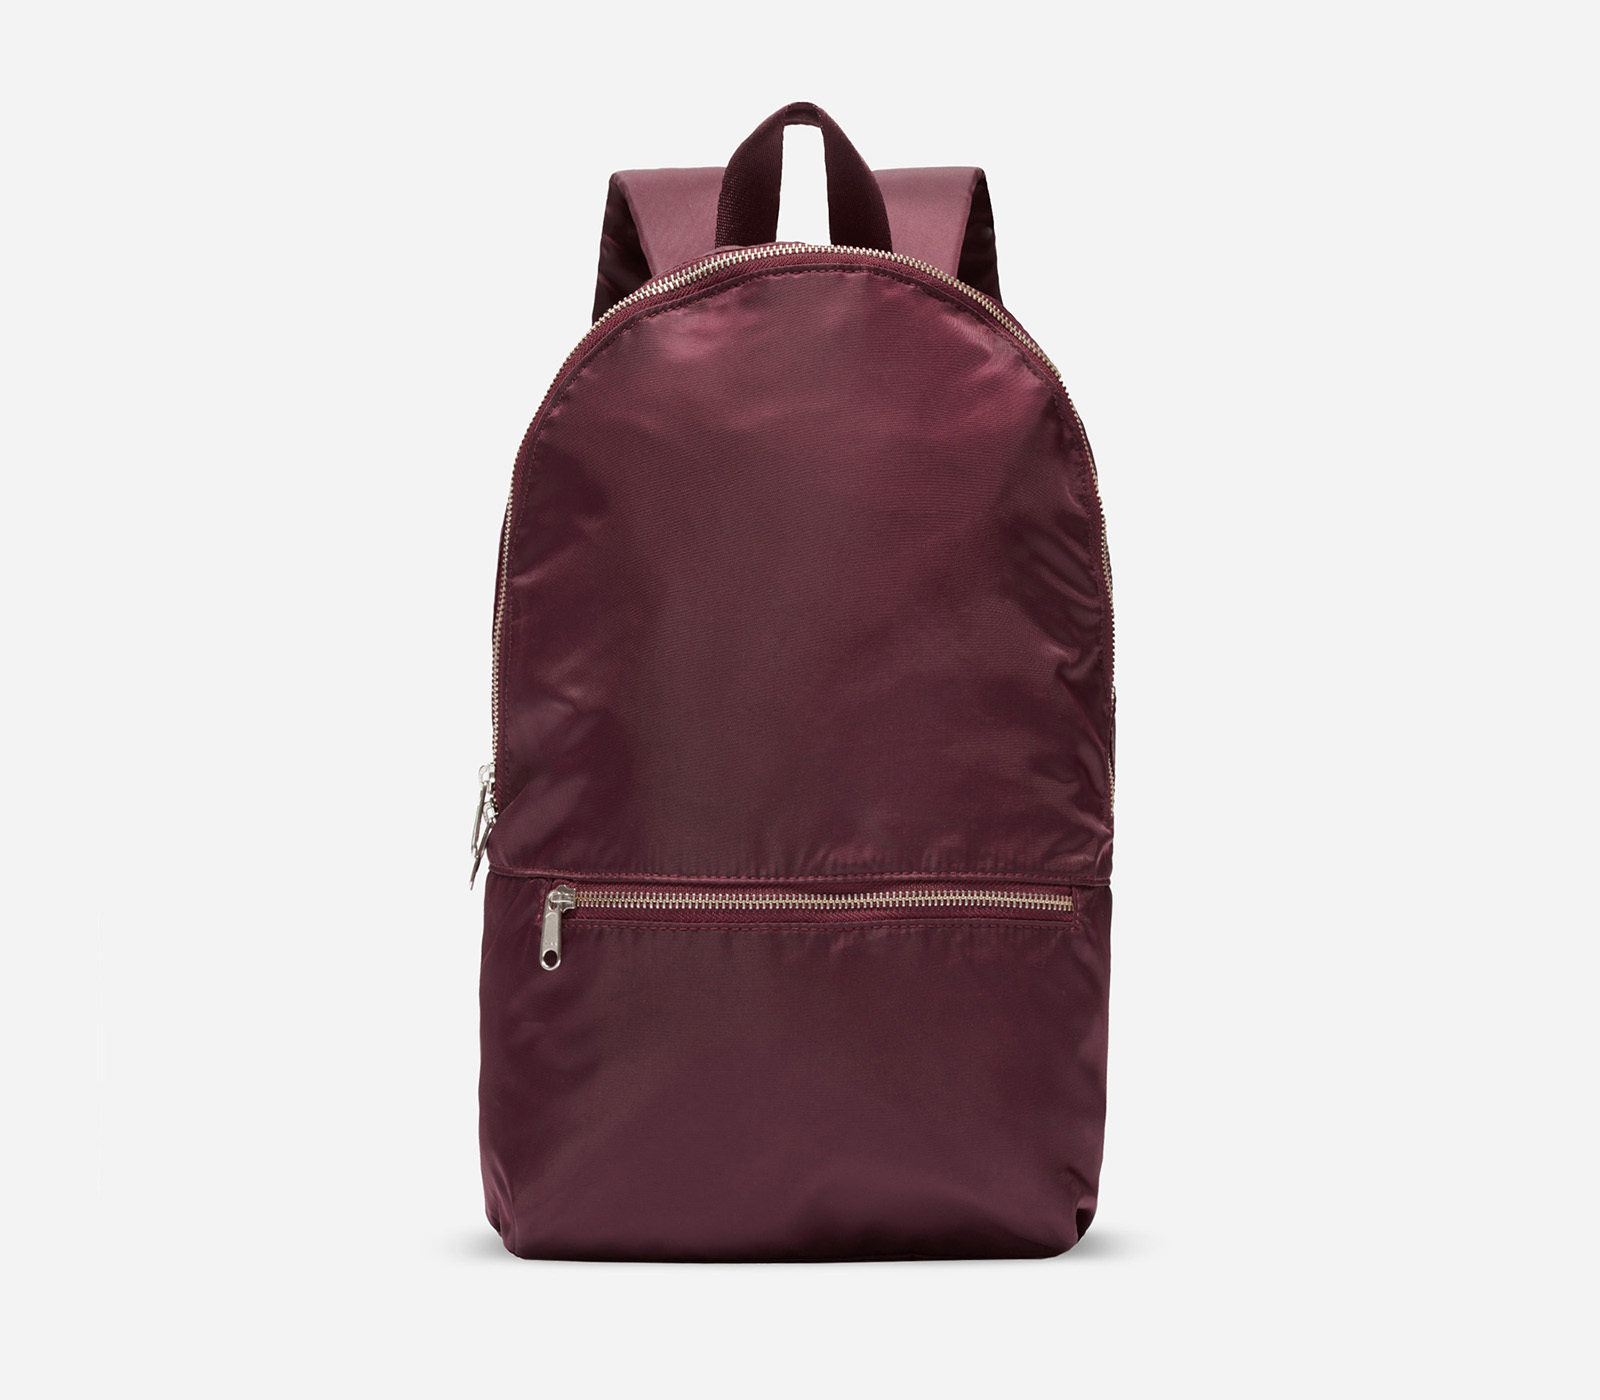 Travel-backpack-Everlane.jpg?mtime=20190415100639#asset:105514